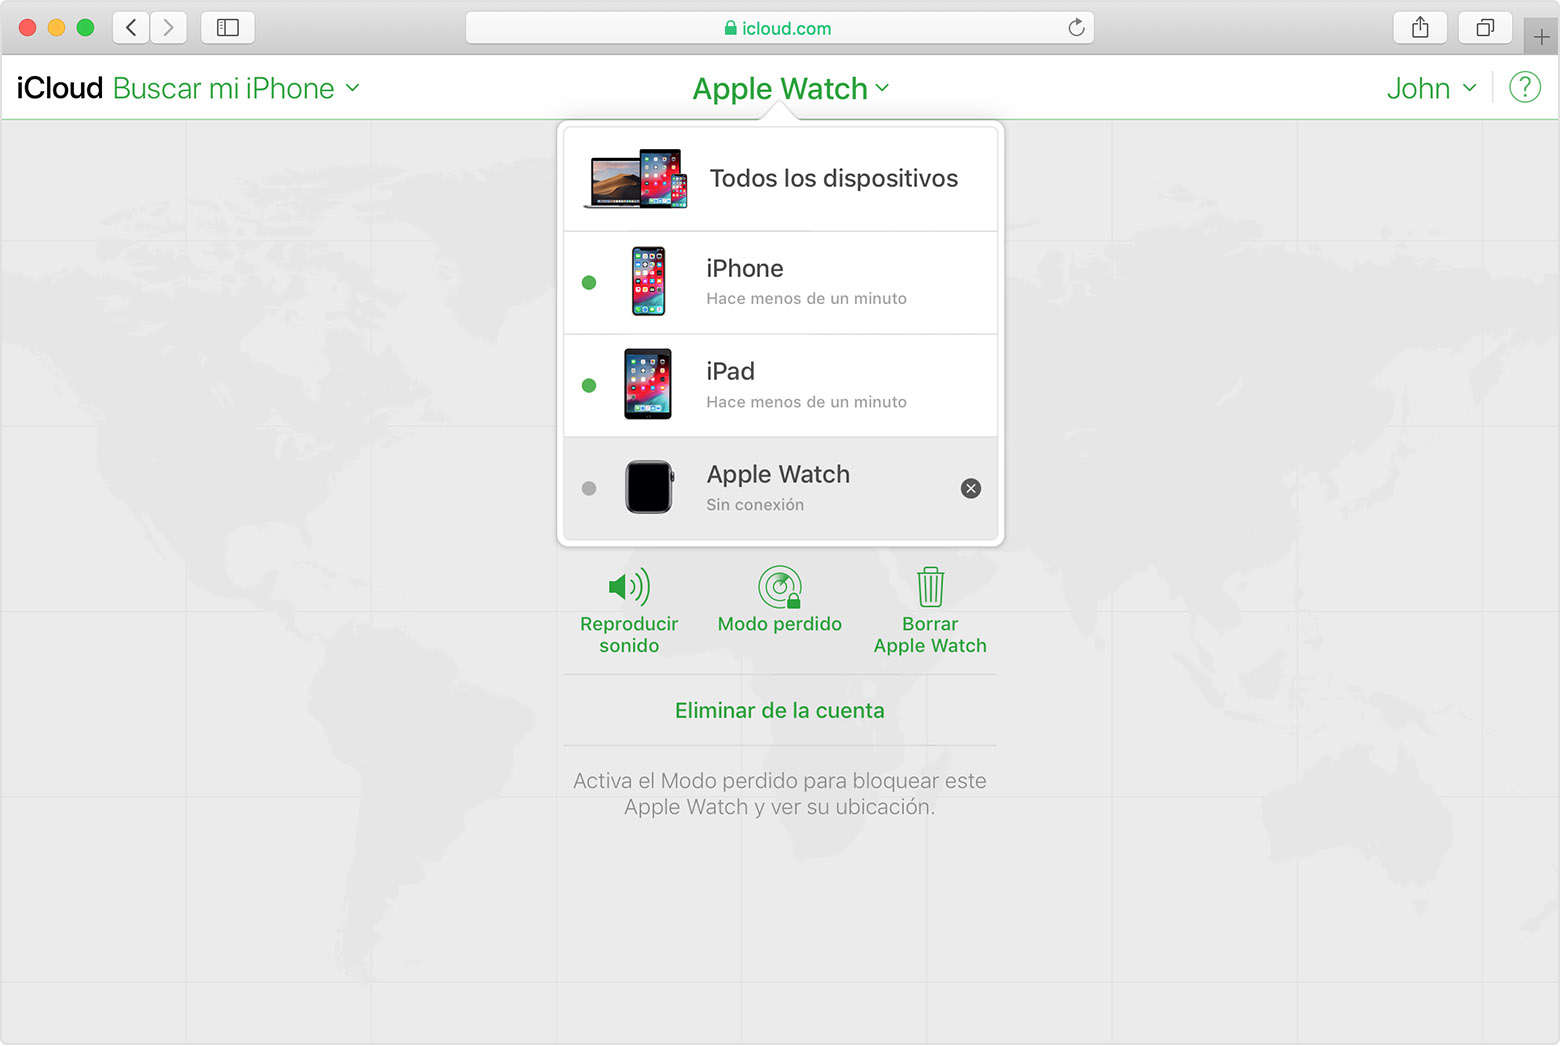 Buscar mi iPhone de iCloud muestra el Apple Watch de John